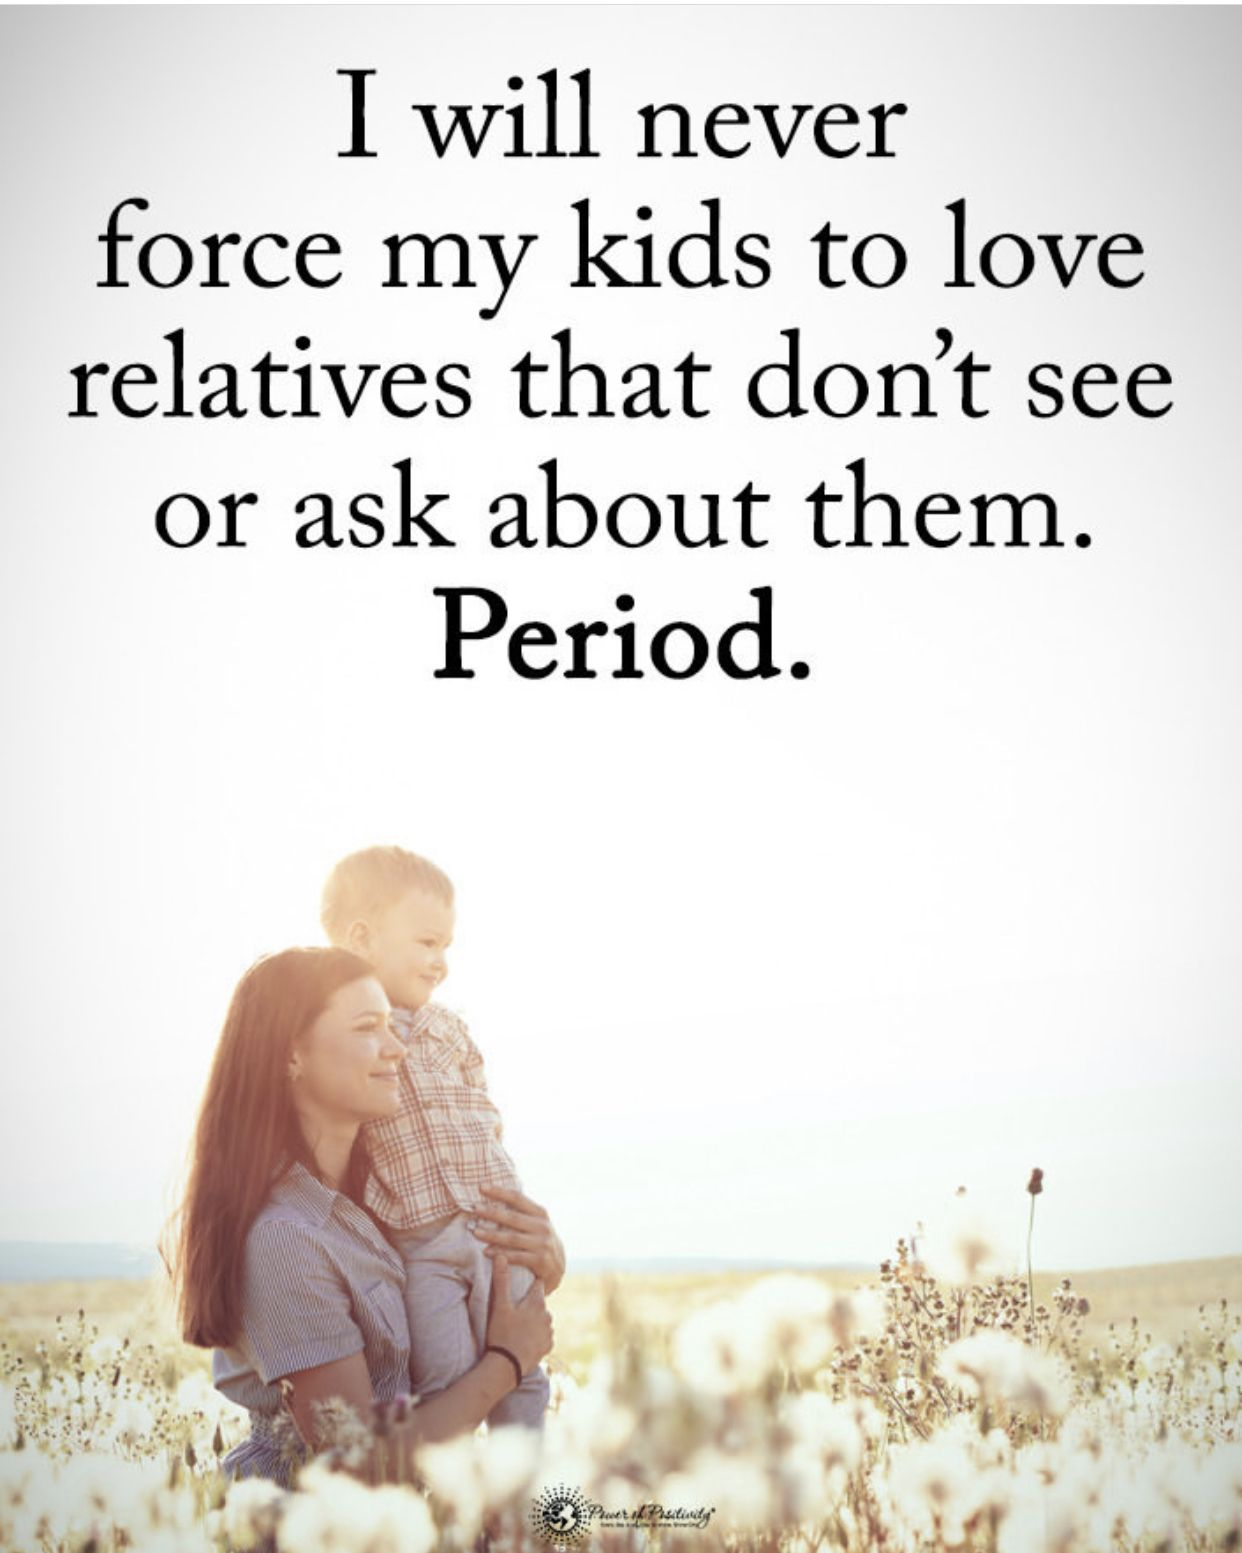 Pin by Patricia Smucker on Parenting  Love my kids quotes, My